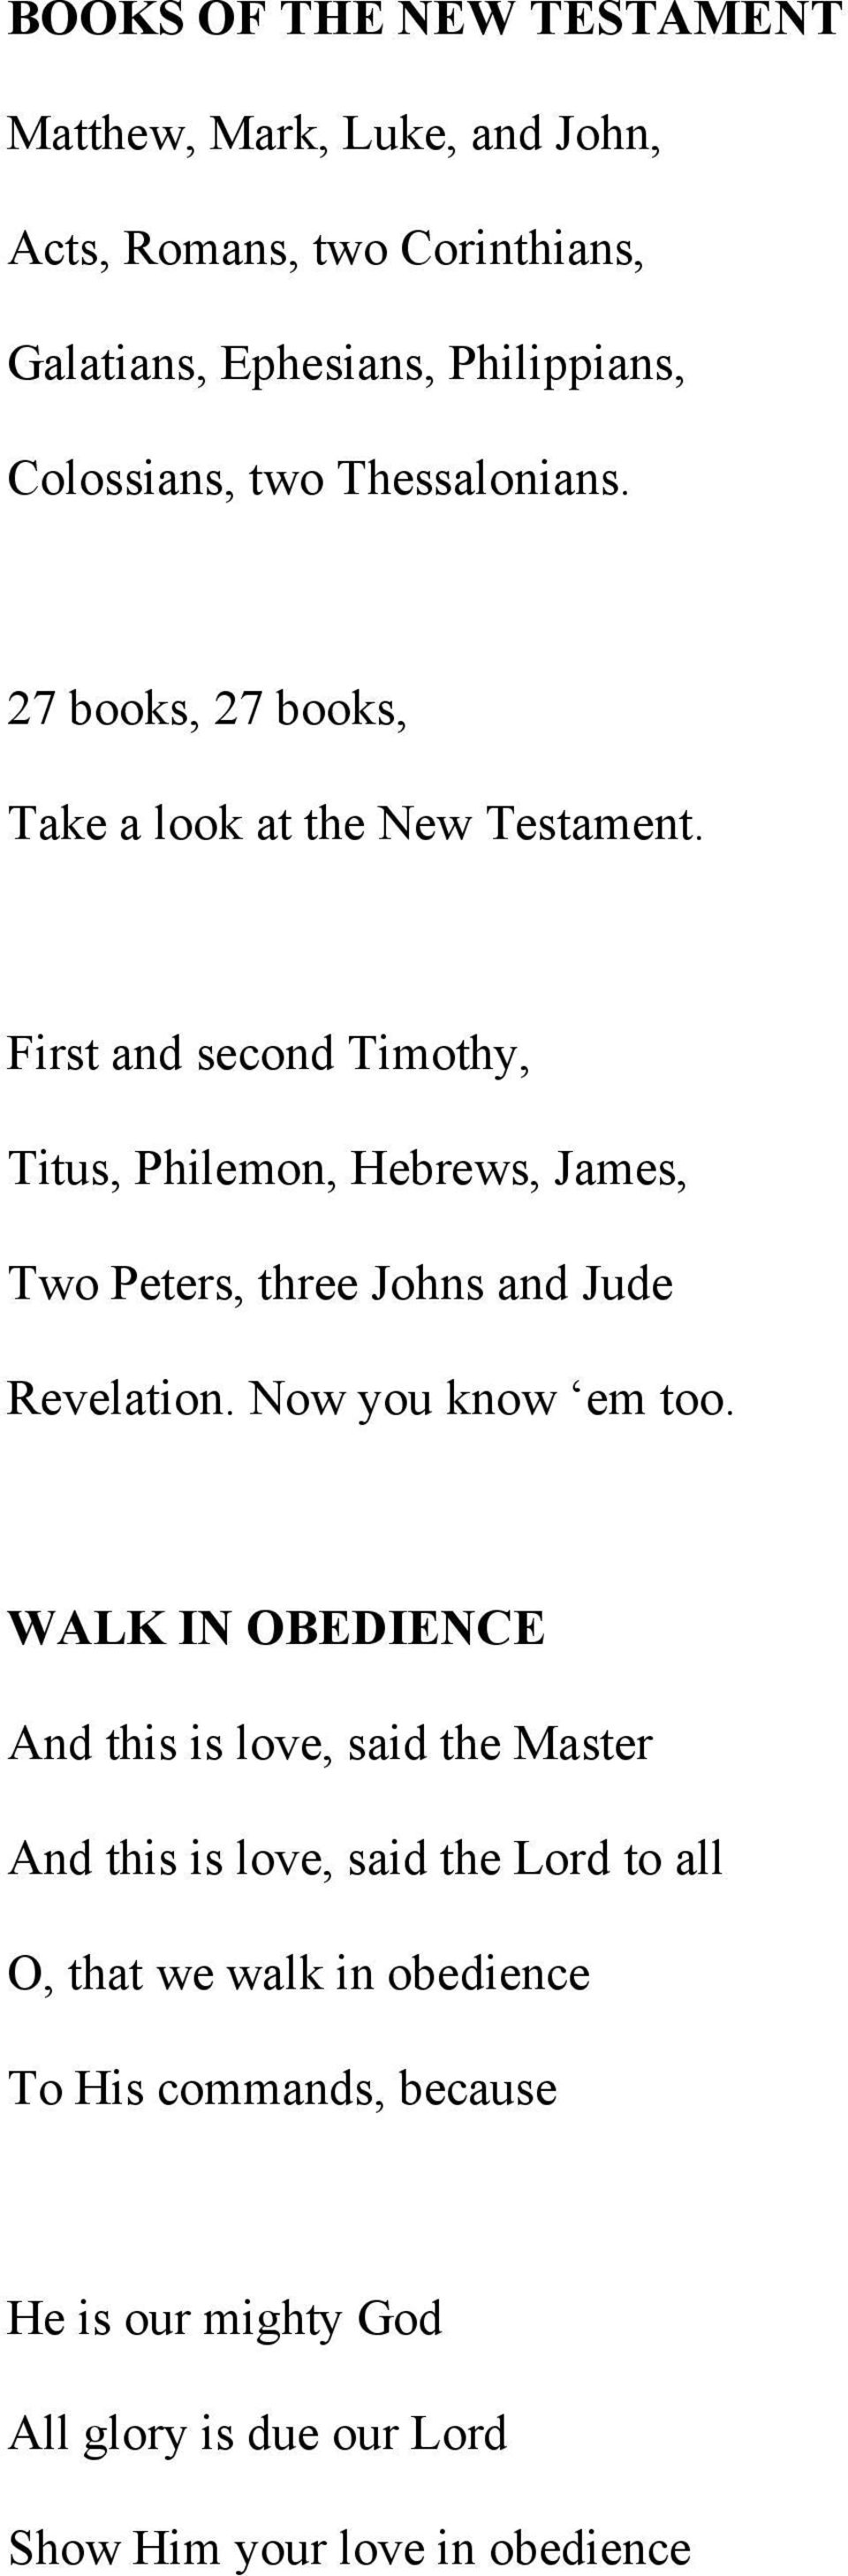 First and second Timothy, Titus, Philemon, Hebrews, James, Two Peters, three Johns and Jude Revelation. Now you know em too.